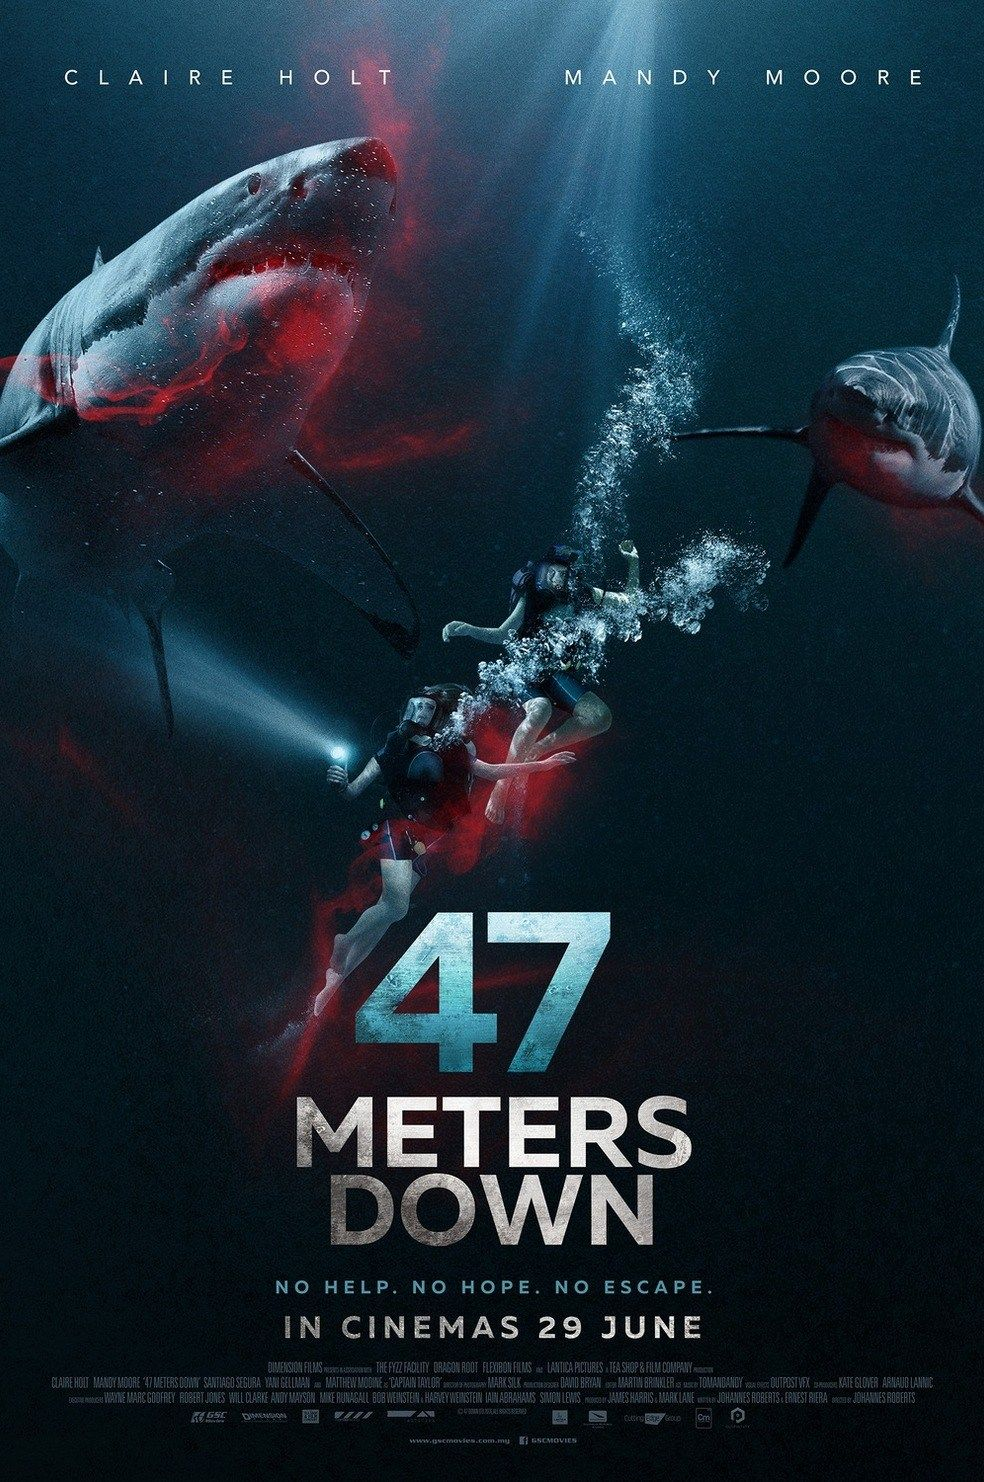 Free online poster design and download - 123 47 Meters Down 2017 Watch Full Hd Movie Free Online